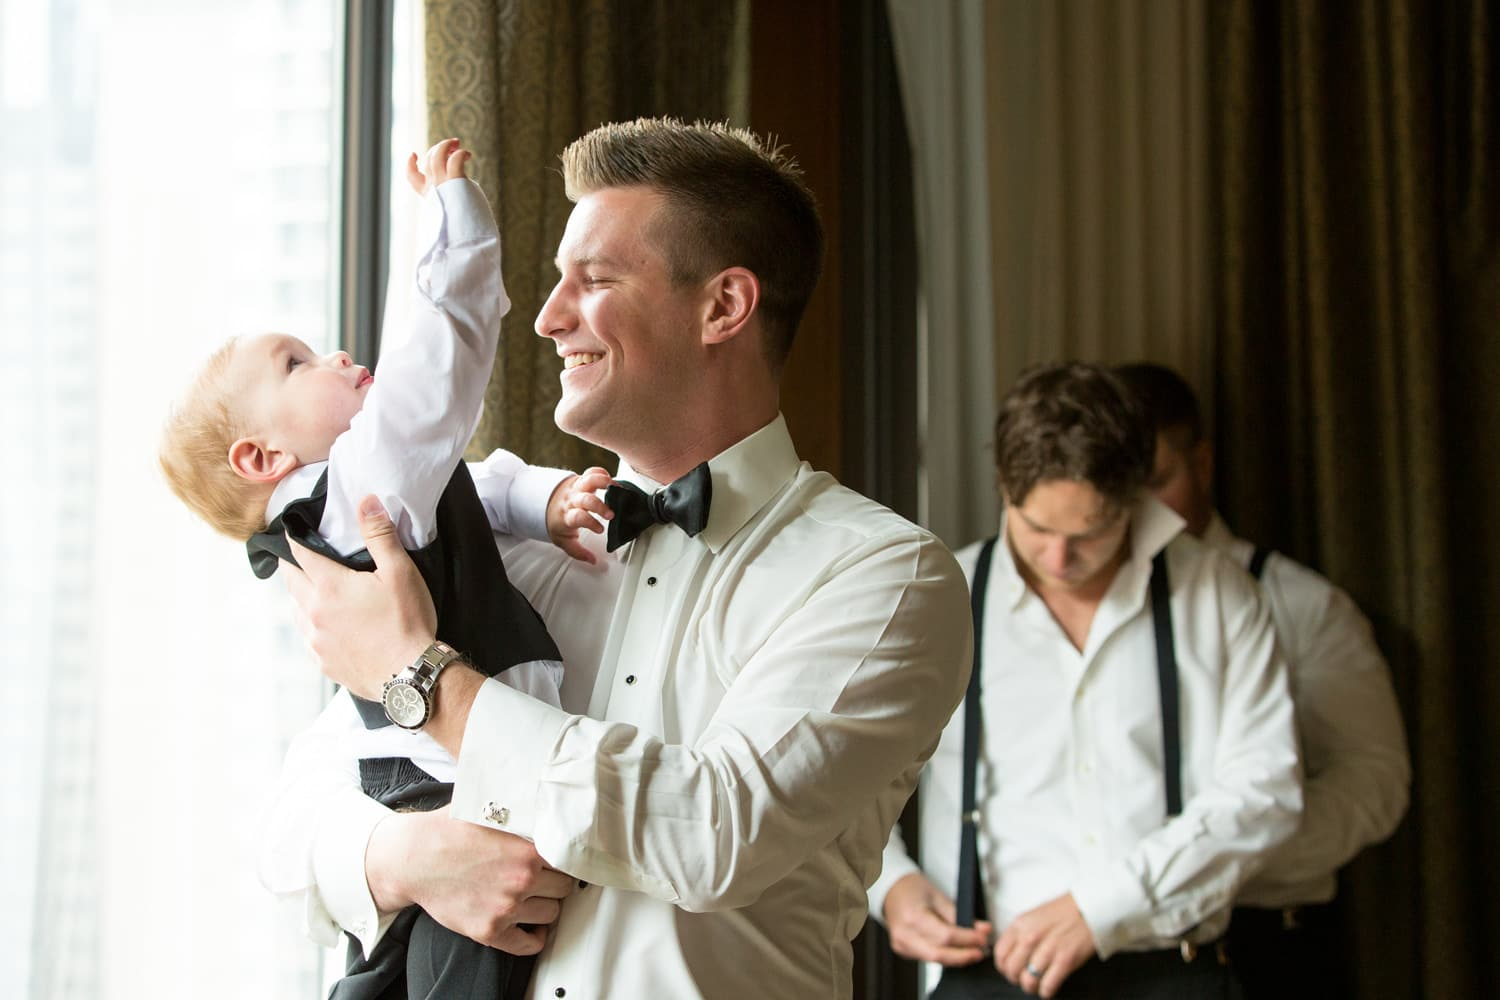 Unposed wedding photography of the groom playing with a child